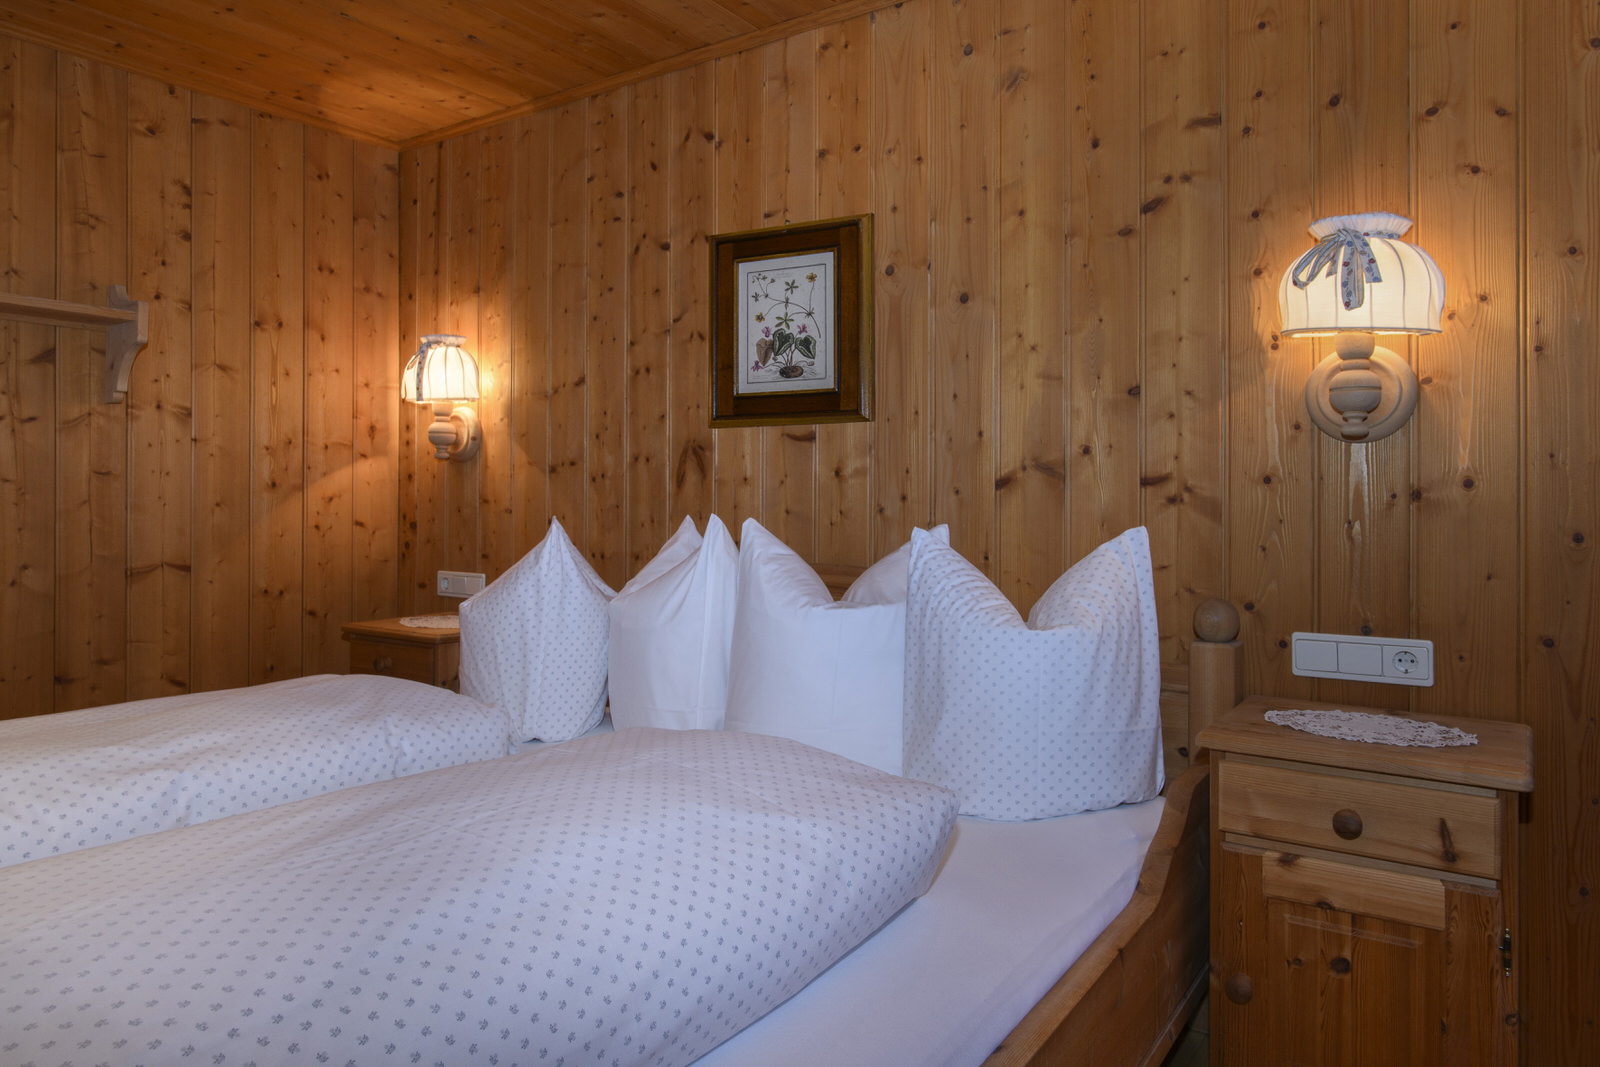 Bärenwald country lodge in the Montafon - sleeping